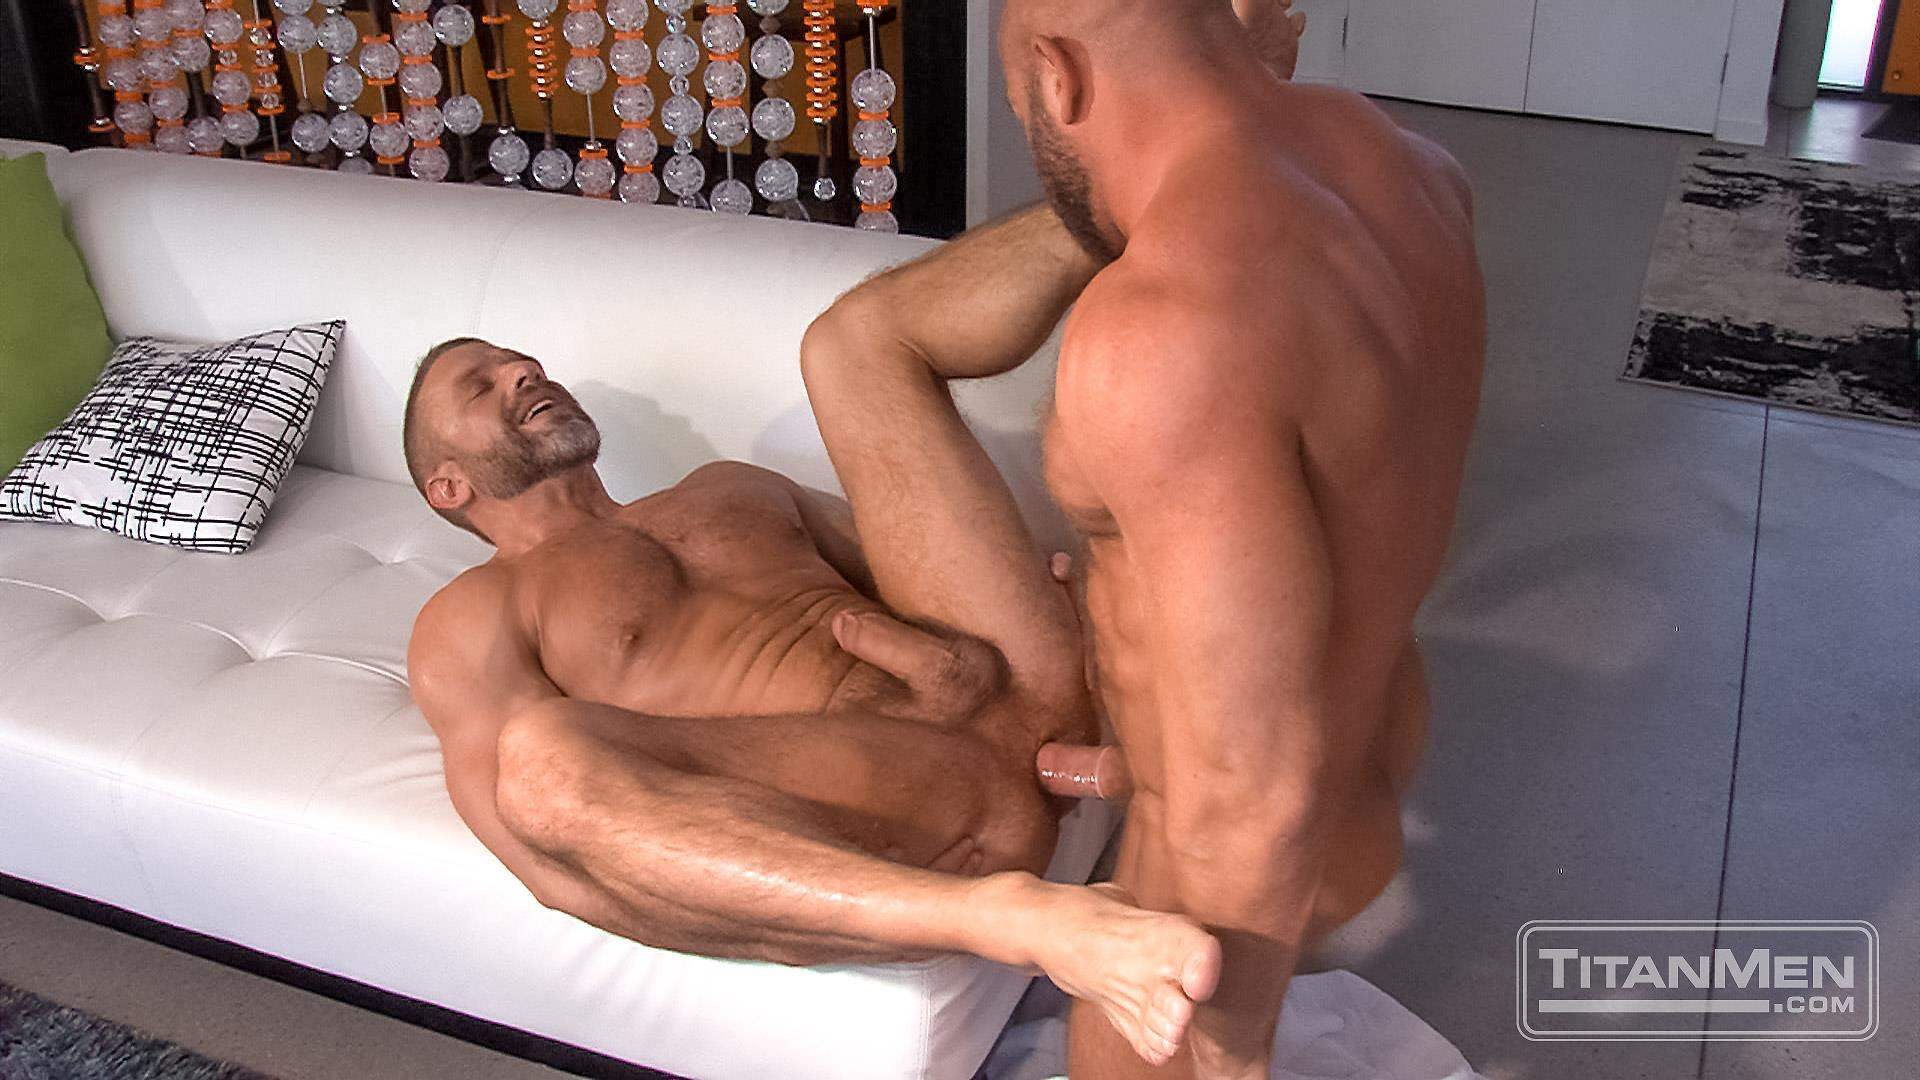 Titanmen Titan Hunter Marx and Dirk Caber Hairy Muscle Daddy Fuck Amateur Gay Porn 41 Dirk Carber Gets Fucked Hard By Another Muscle Daddy With A Thick Cock